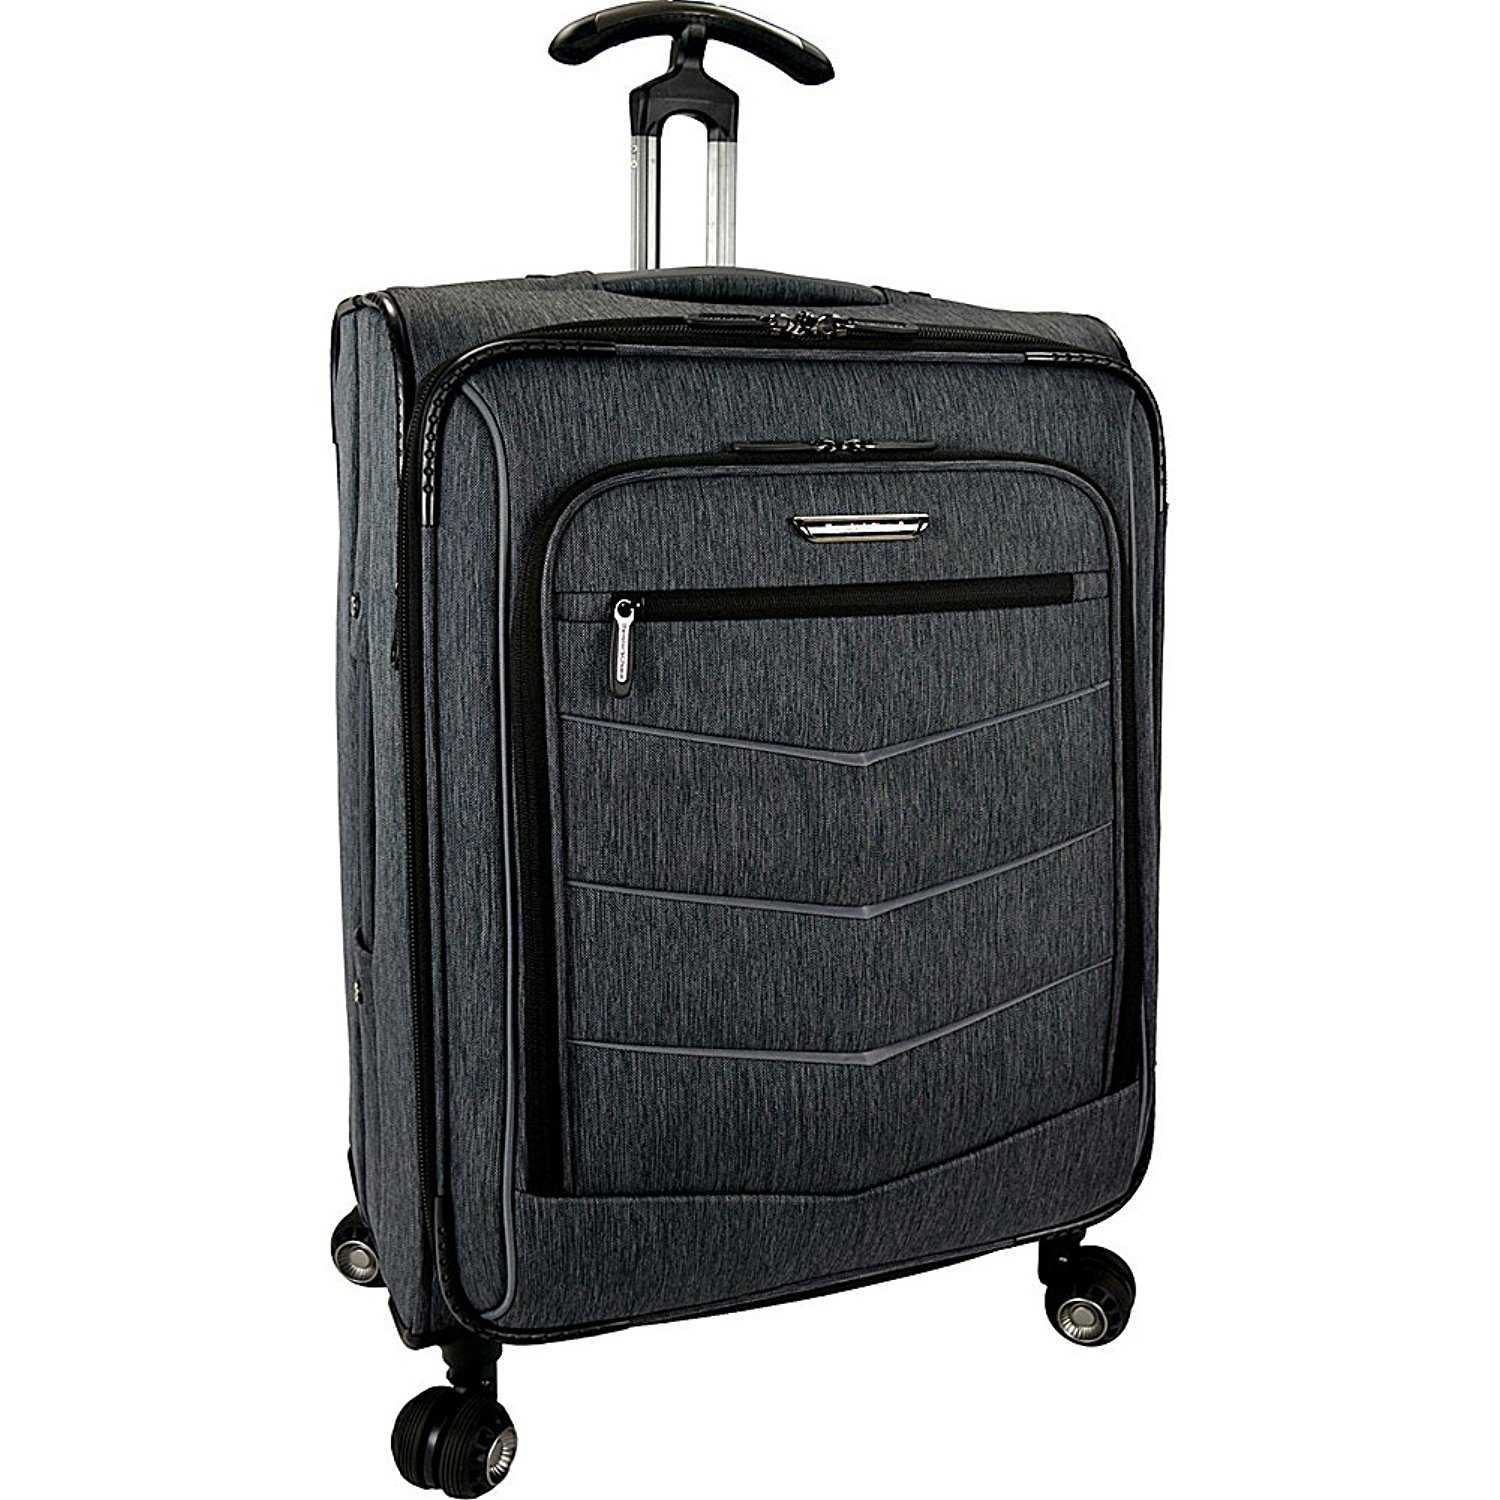 76ea7d131 Runner-Up, Best Overall: Traveler's Choice Silverwood 26-Inch Softside  Spinner